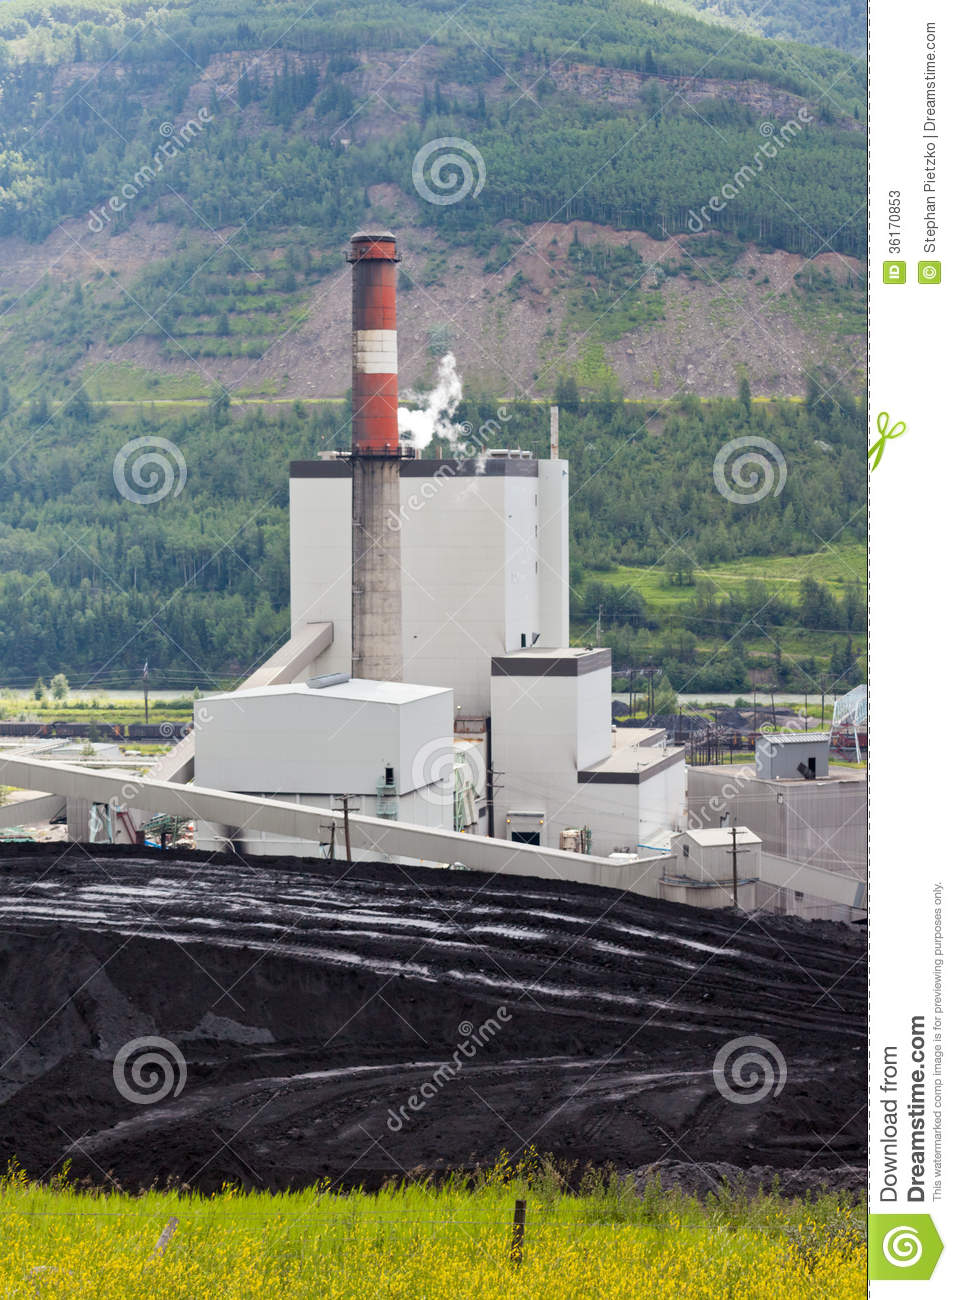 fire powered coal mining detrimental The process to generate energy from coal involves mining the coal, then transporting, cleaning and burning it  positives & negatives of coal energy sources.